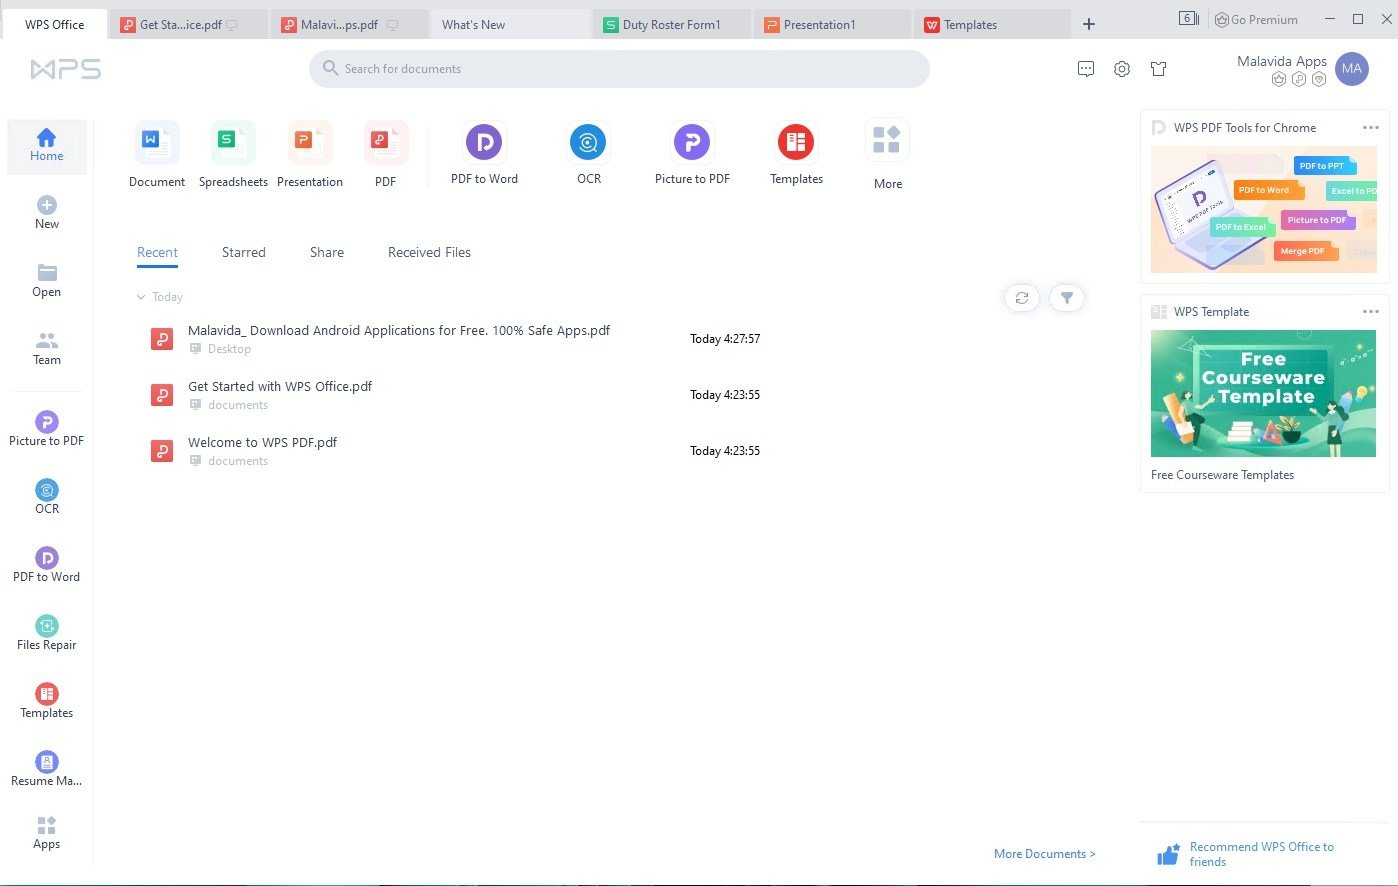 WPS Office 2016 Free 10 2 0 7635 - Download for PC Free